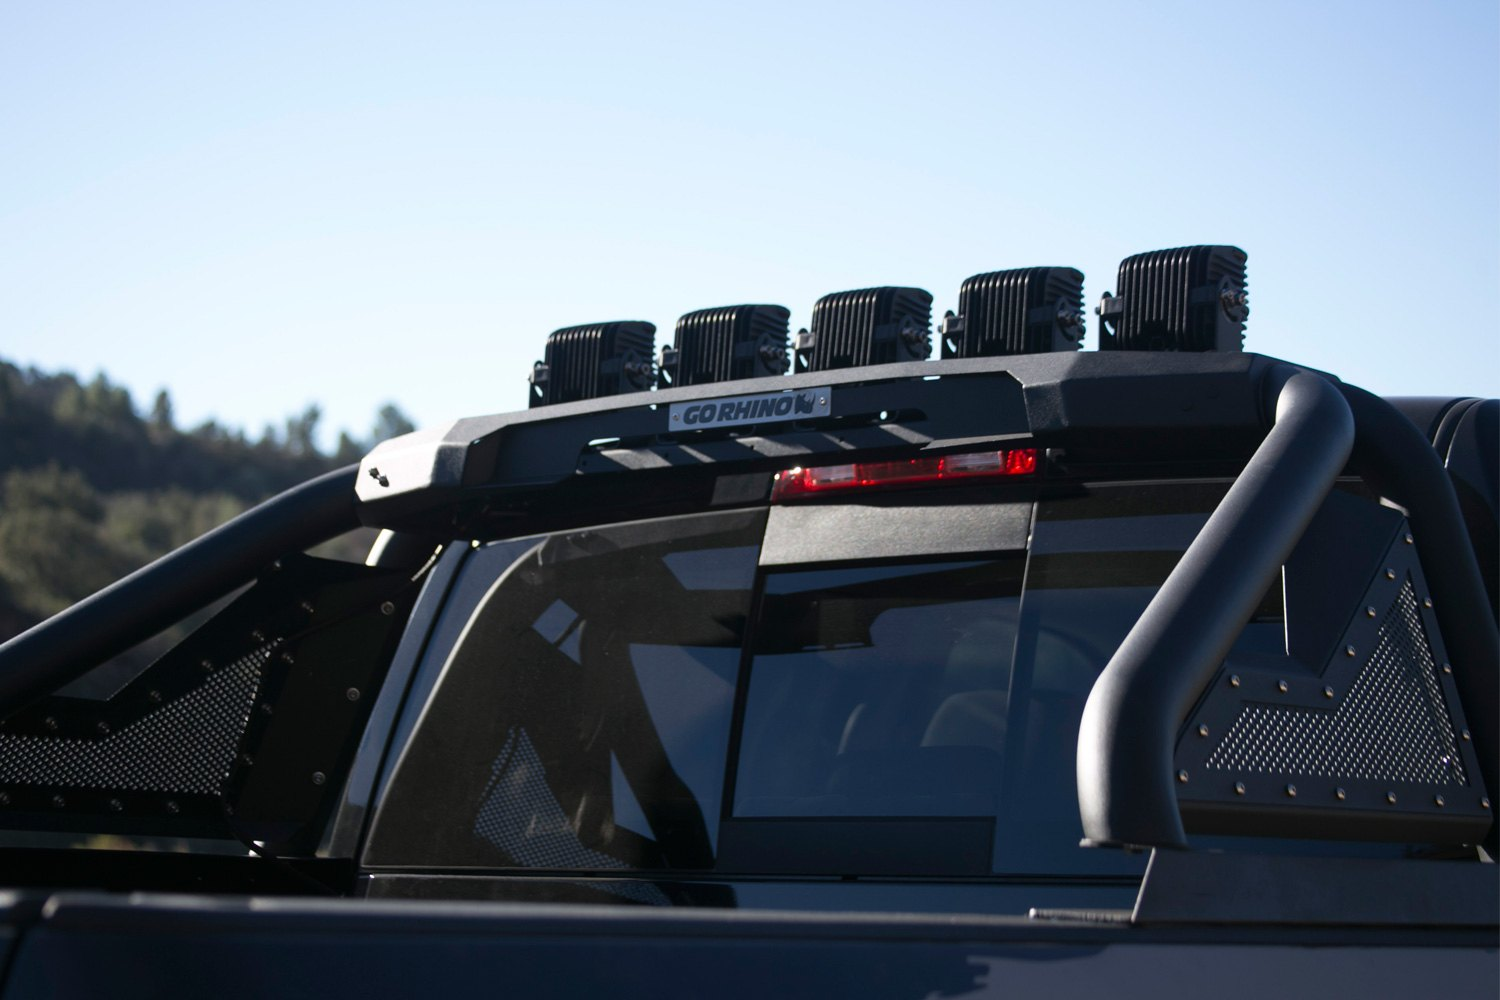 Go Rhino Sport Bar 2 0 Bed Bars 319949224 moreover 2004 Ford F 150 Fuel Maverick Rough Country Leveling Kit furthermore Sierra Denali Pickup Truck additionally 167907 Vinlyed My Door Pillars besides 282178097625. on 2014 gmc sierra all terrain accessories